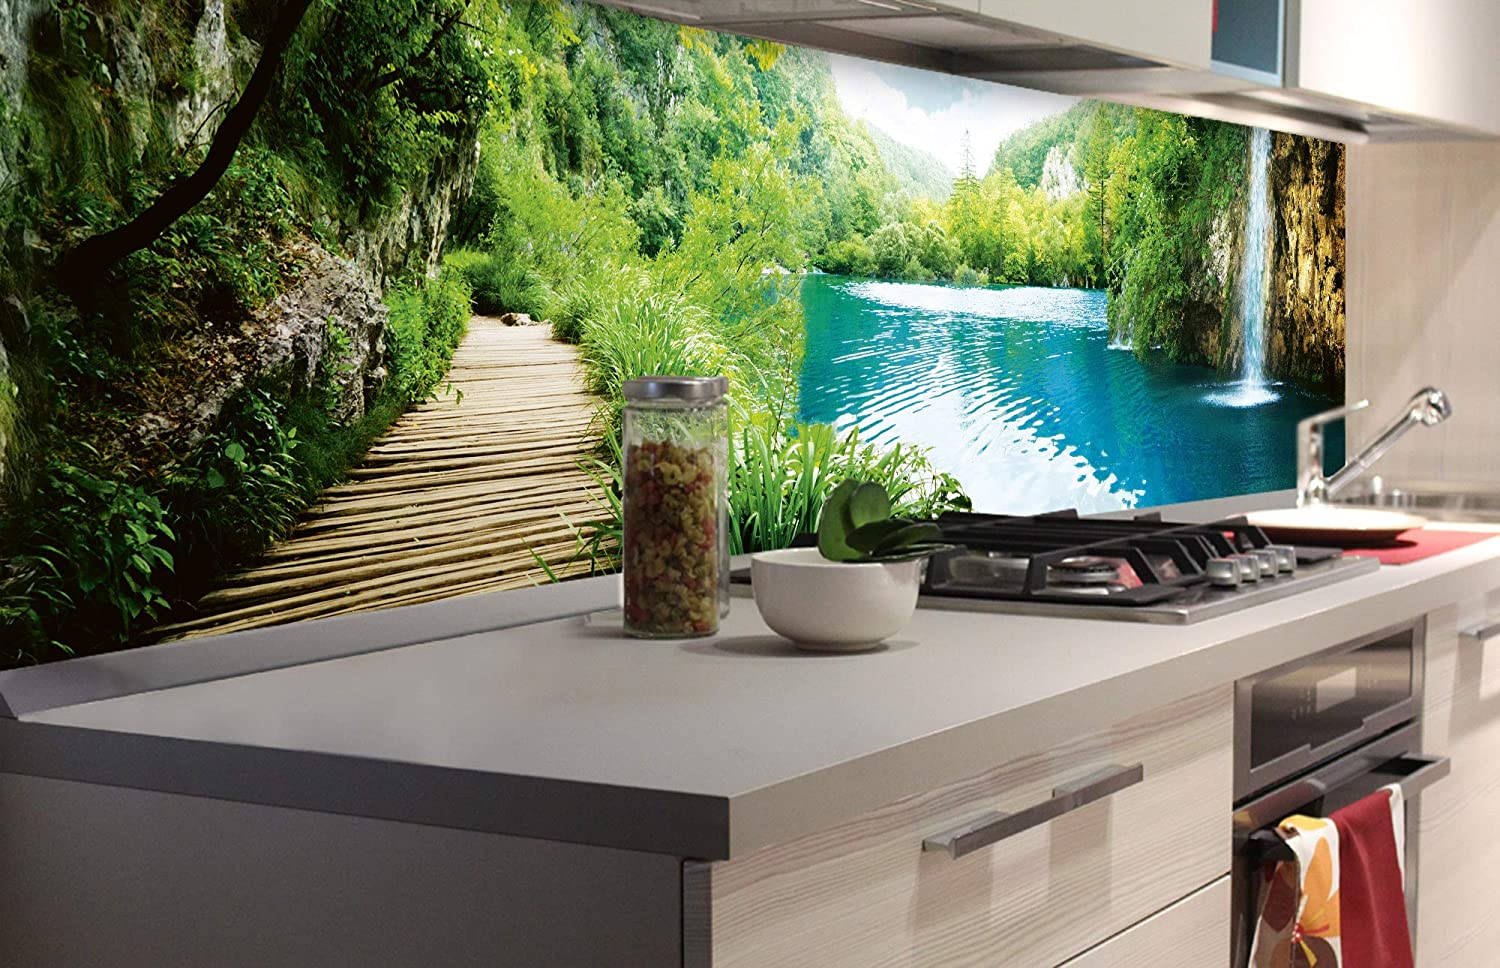 Dimex Line Self Adhesive Film For Kitchen Back Wall Relaxation In The Forest 180 X 60 Cm Adhesive Film Decorative Film Splash Guard For Kitchen Premium Quality Amazon De Diy Tools